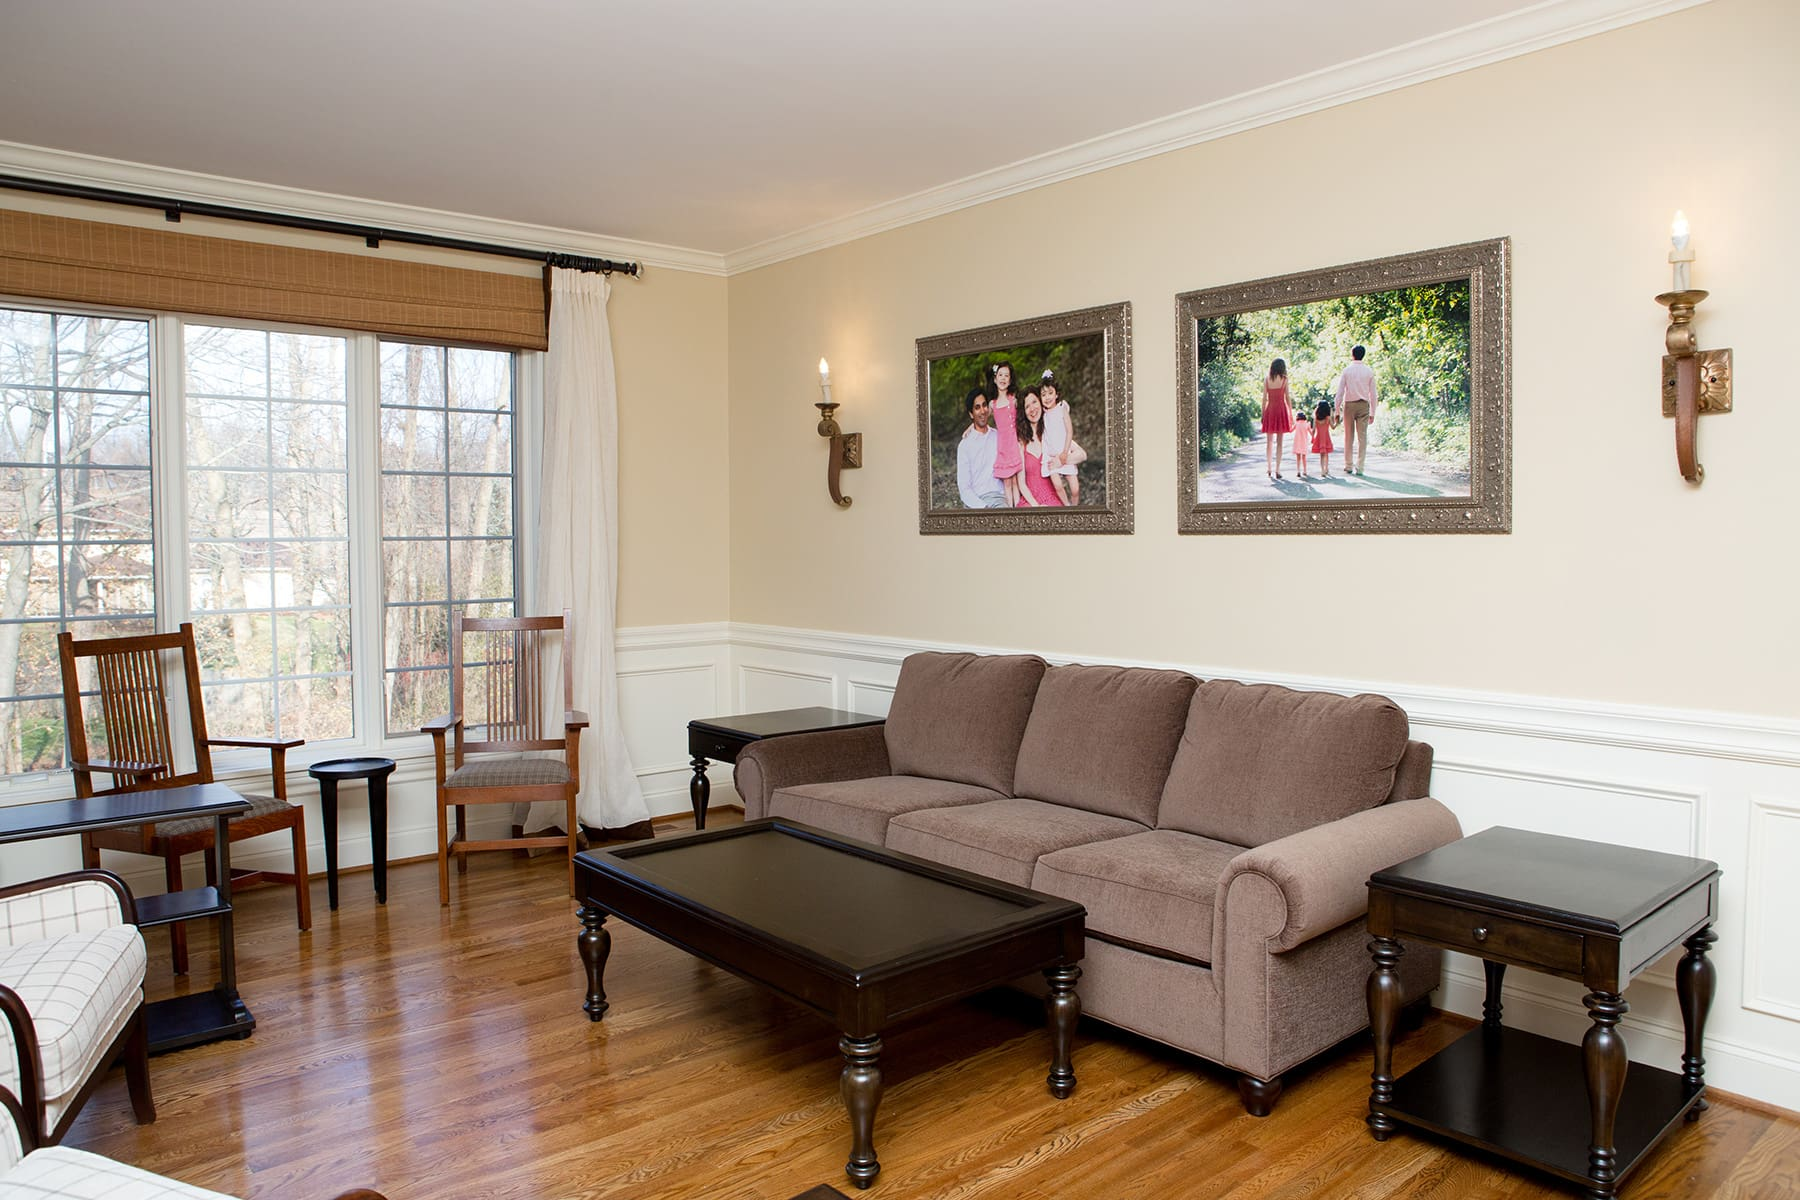 beautiful family portraits hanging in a living room